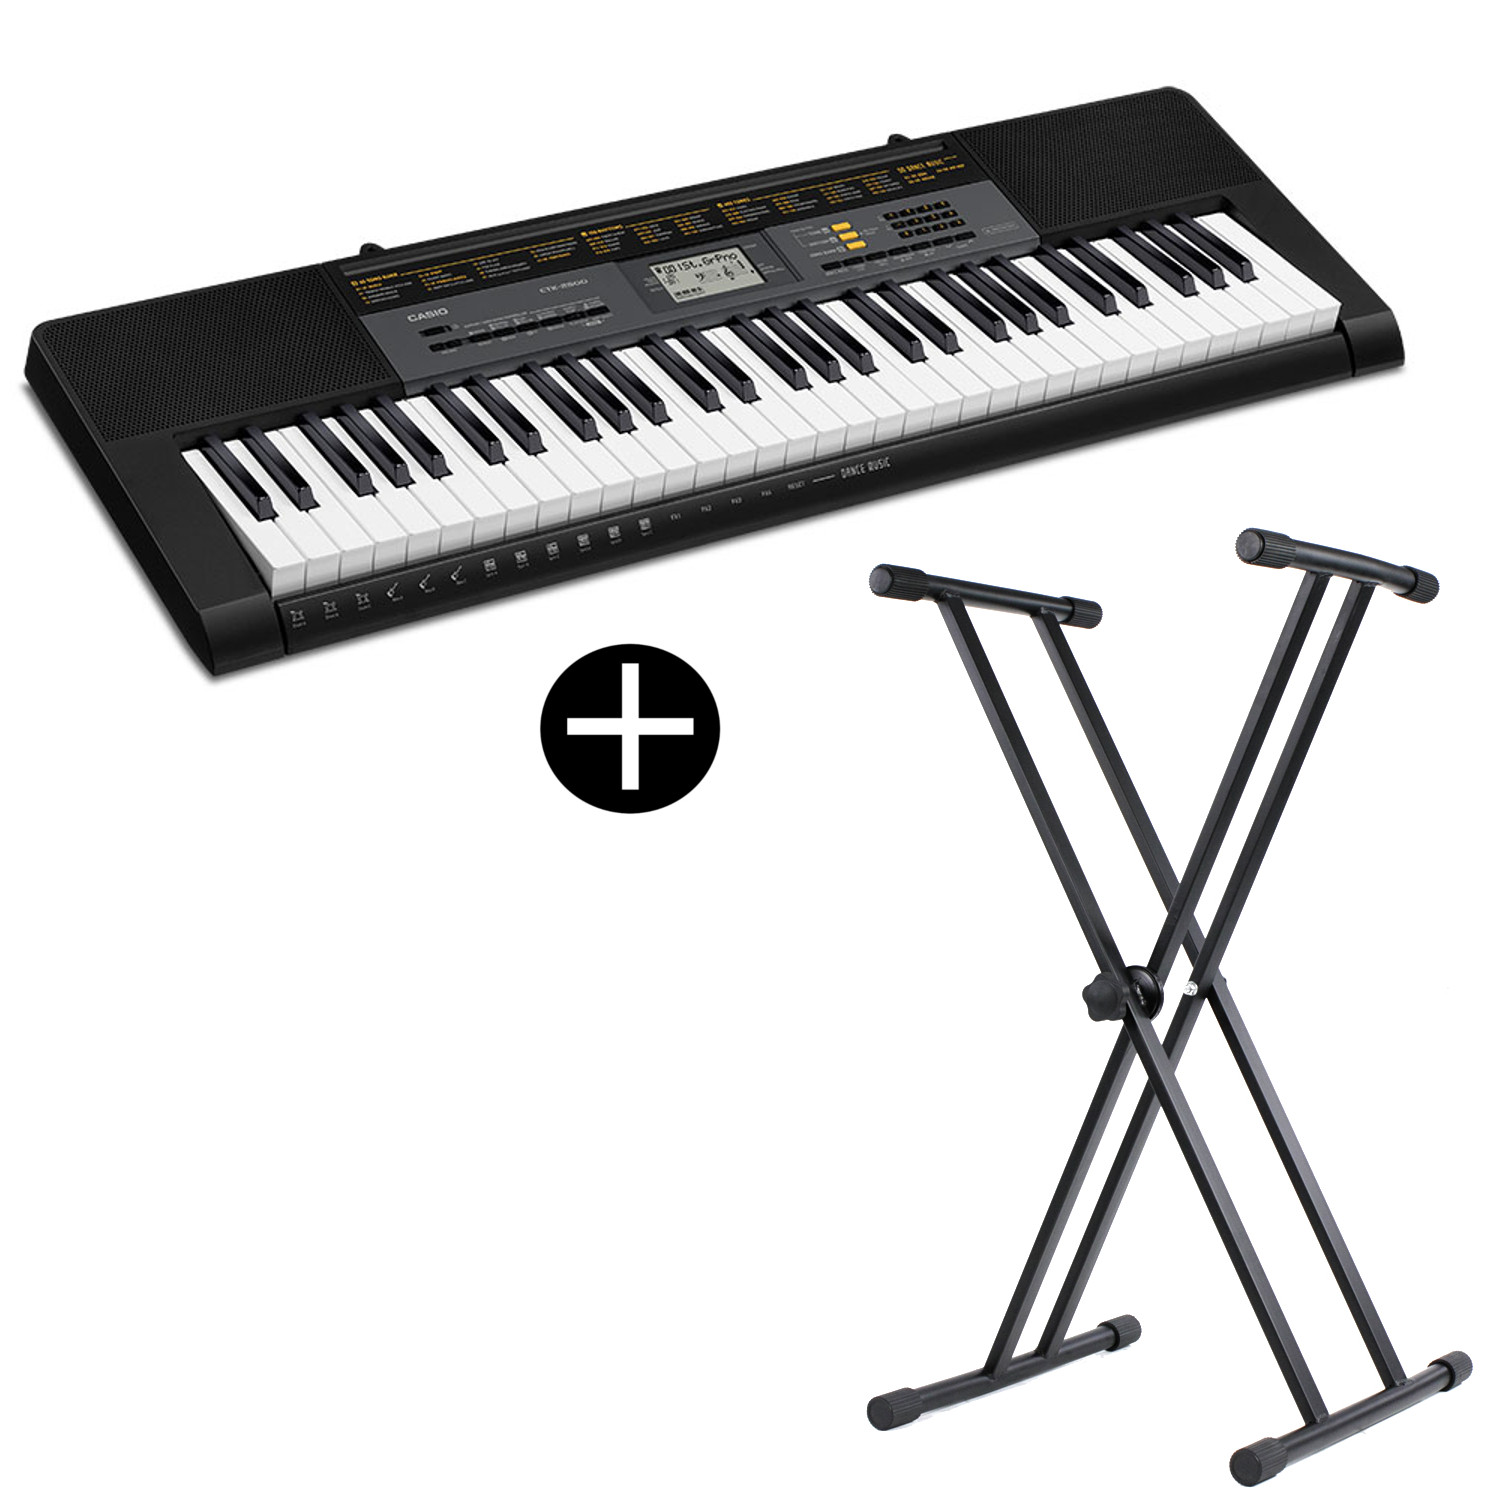 Casio CTK 2500 keyboard with 61 keys including stand